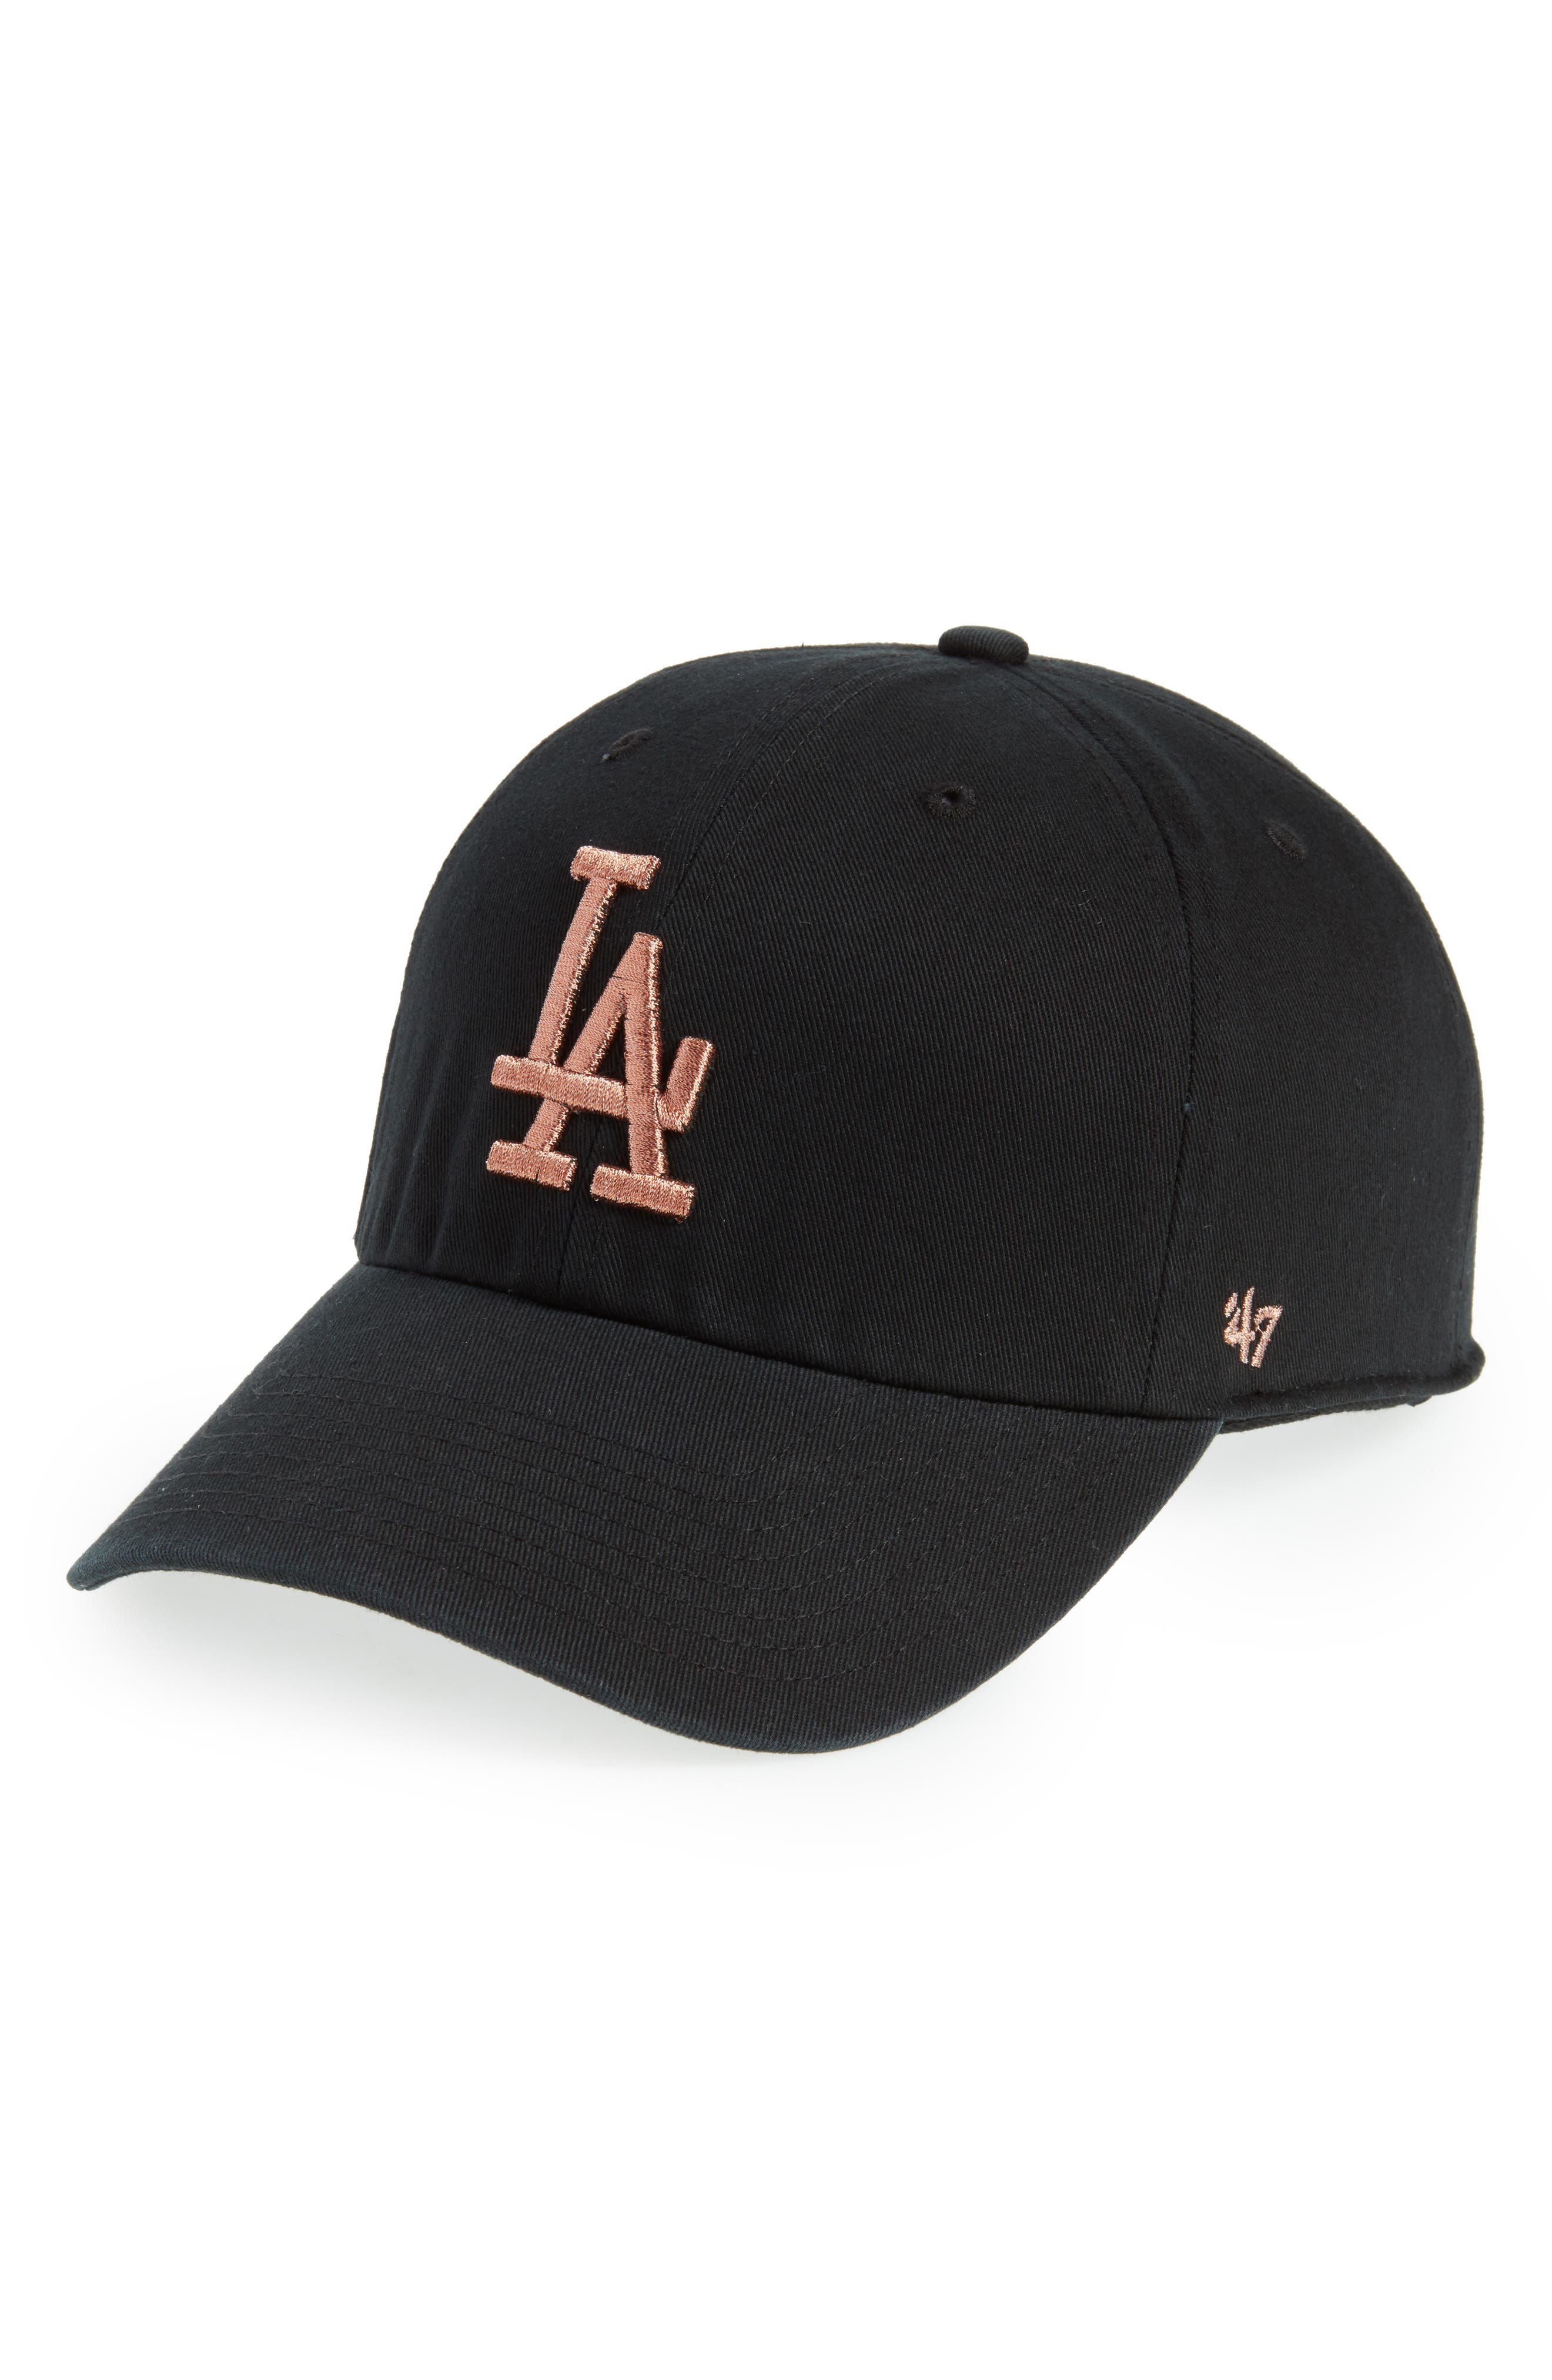 Los Angeles Dodgers Metallic Embroidery Cap,                         Main,                         color, Black